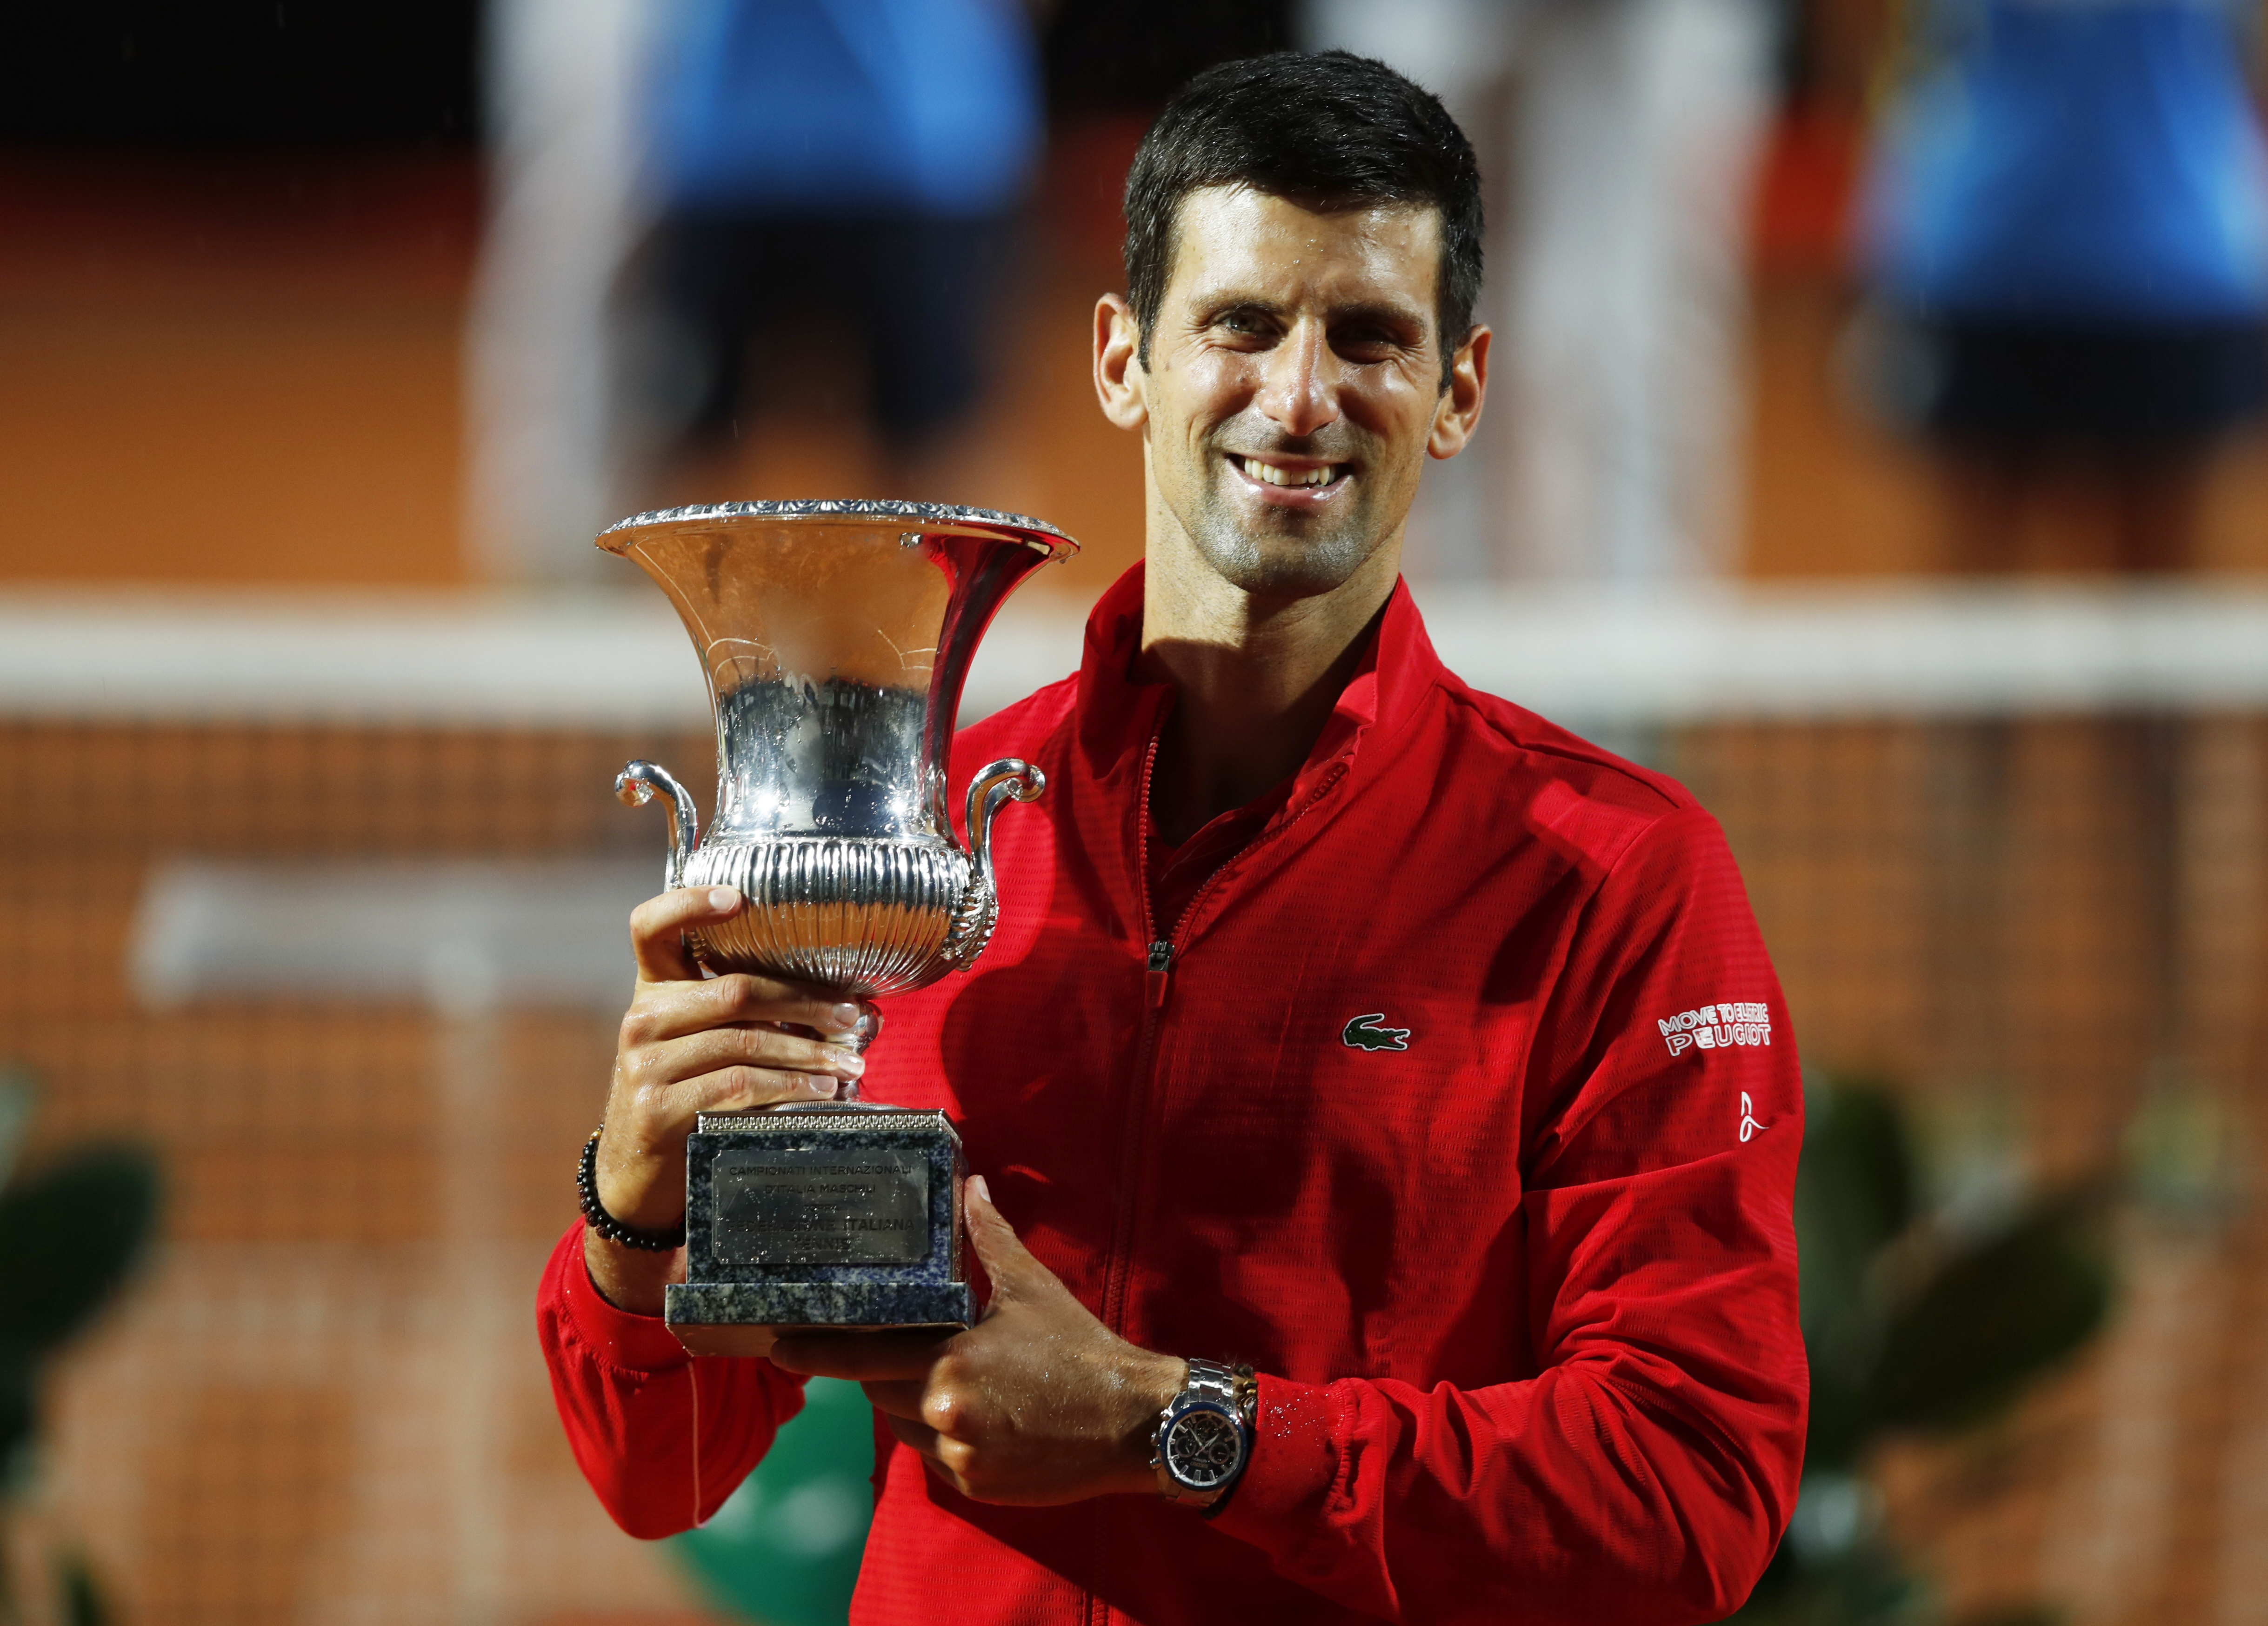 Serbia's Novak Djokovic celebrates with the trophy after winning the final against Argentina's Diego Schwartzman. Photo: Reuters